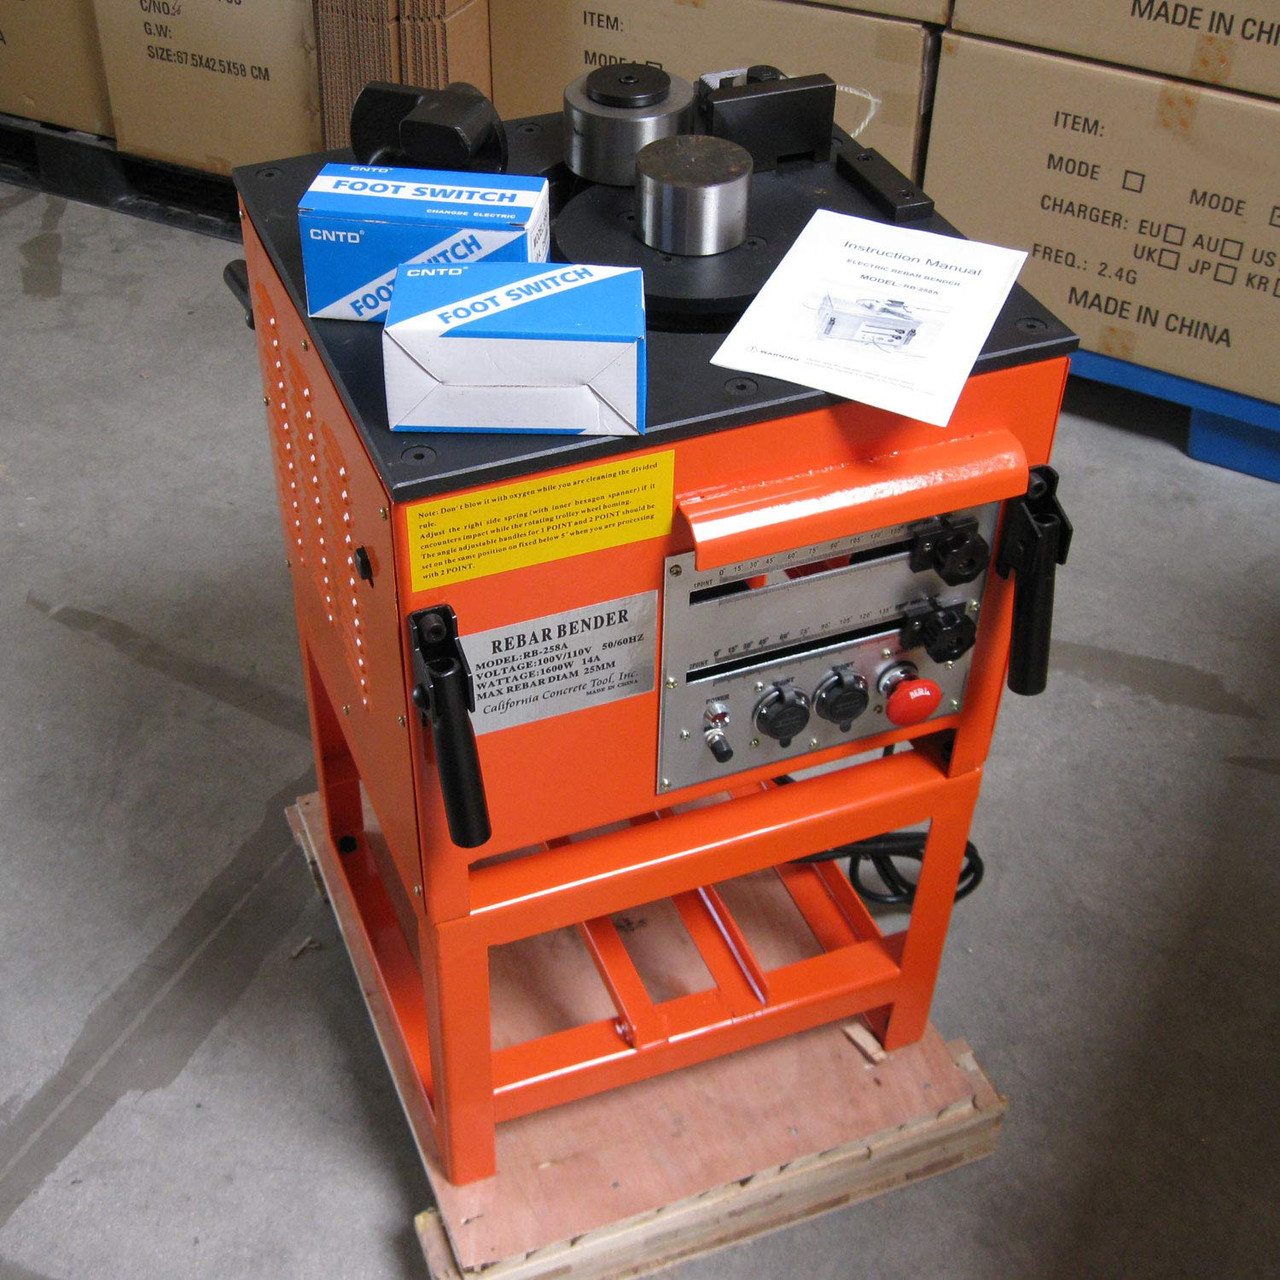 Electric Rebar Bender - Bend Up to #8(1 inch) Grade 60 Rebar and Round Bar  (Model: RB-258A)